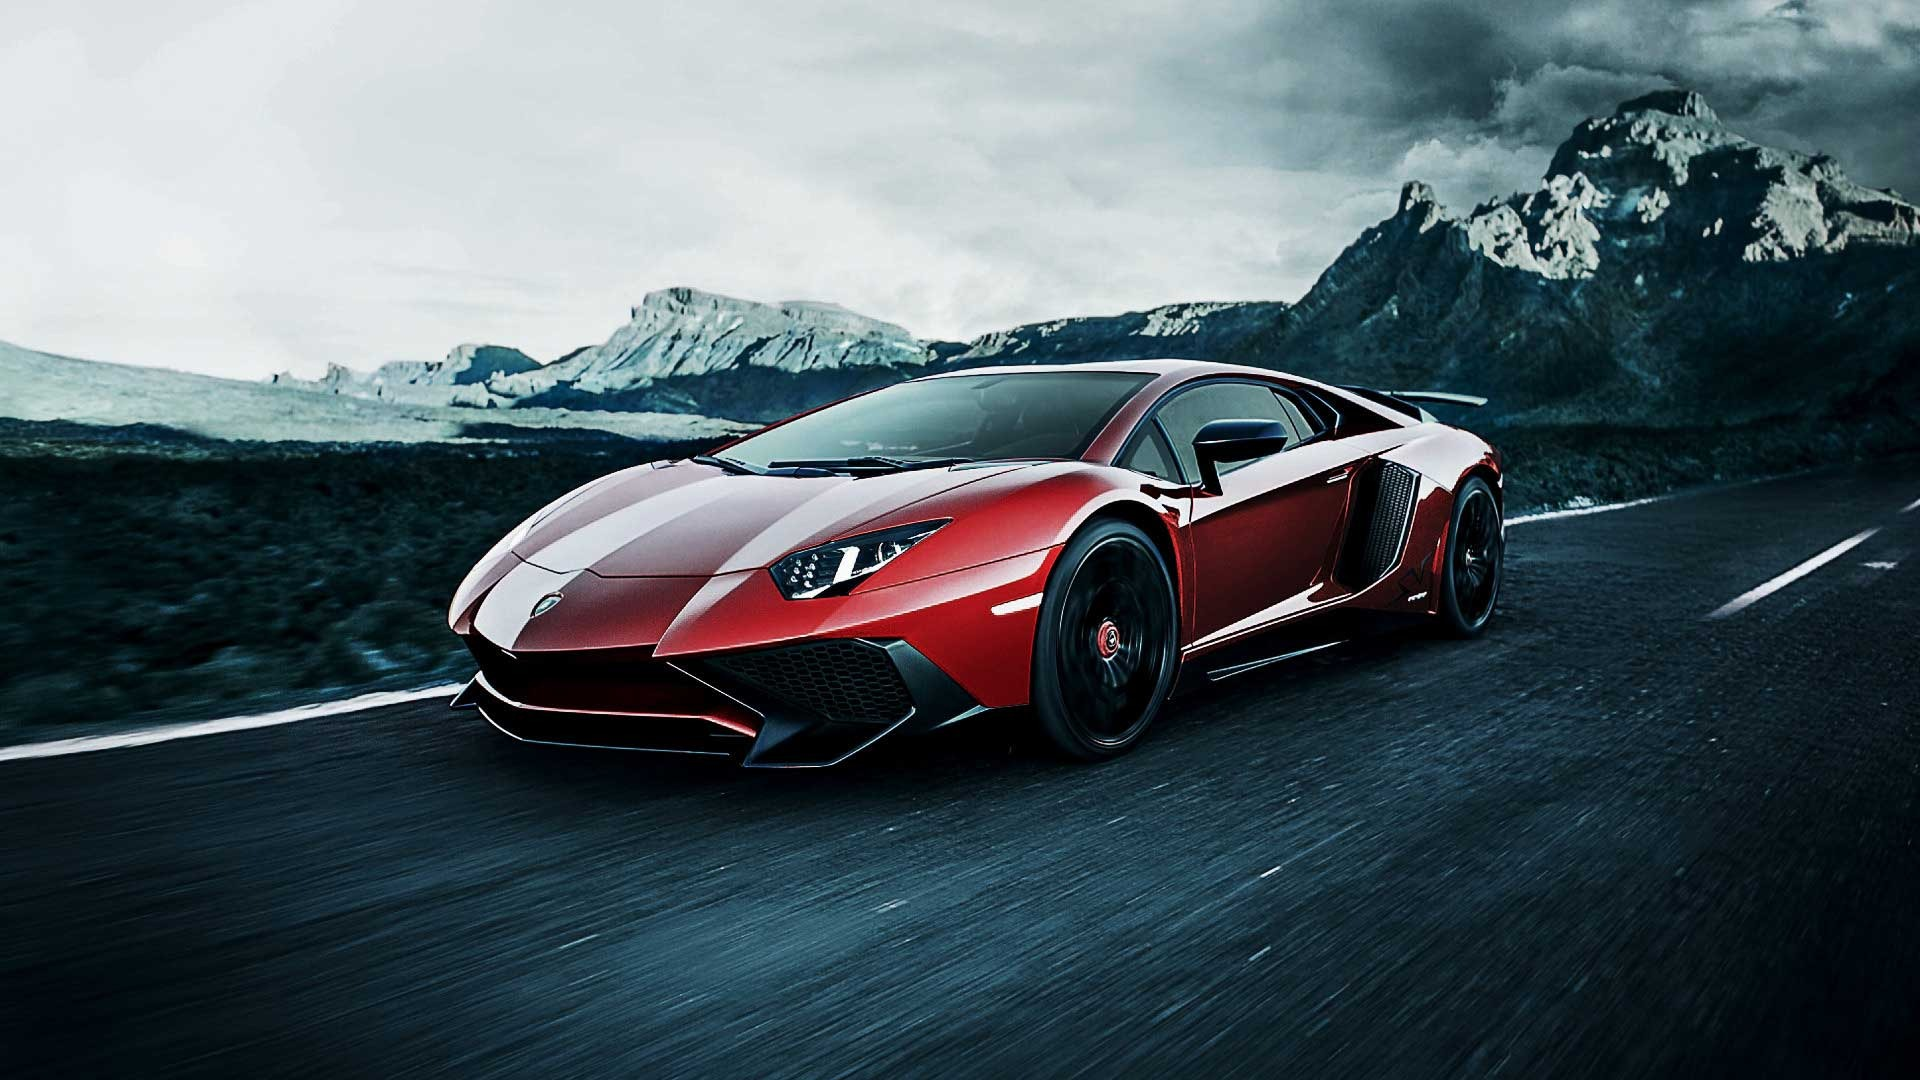 Red Lamborghini on a Speed Road 580.83 Kb